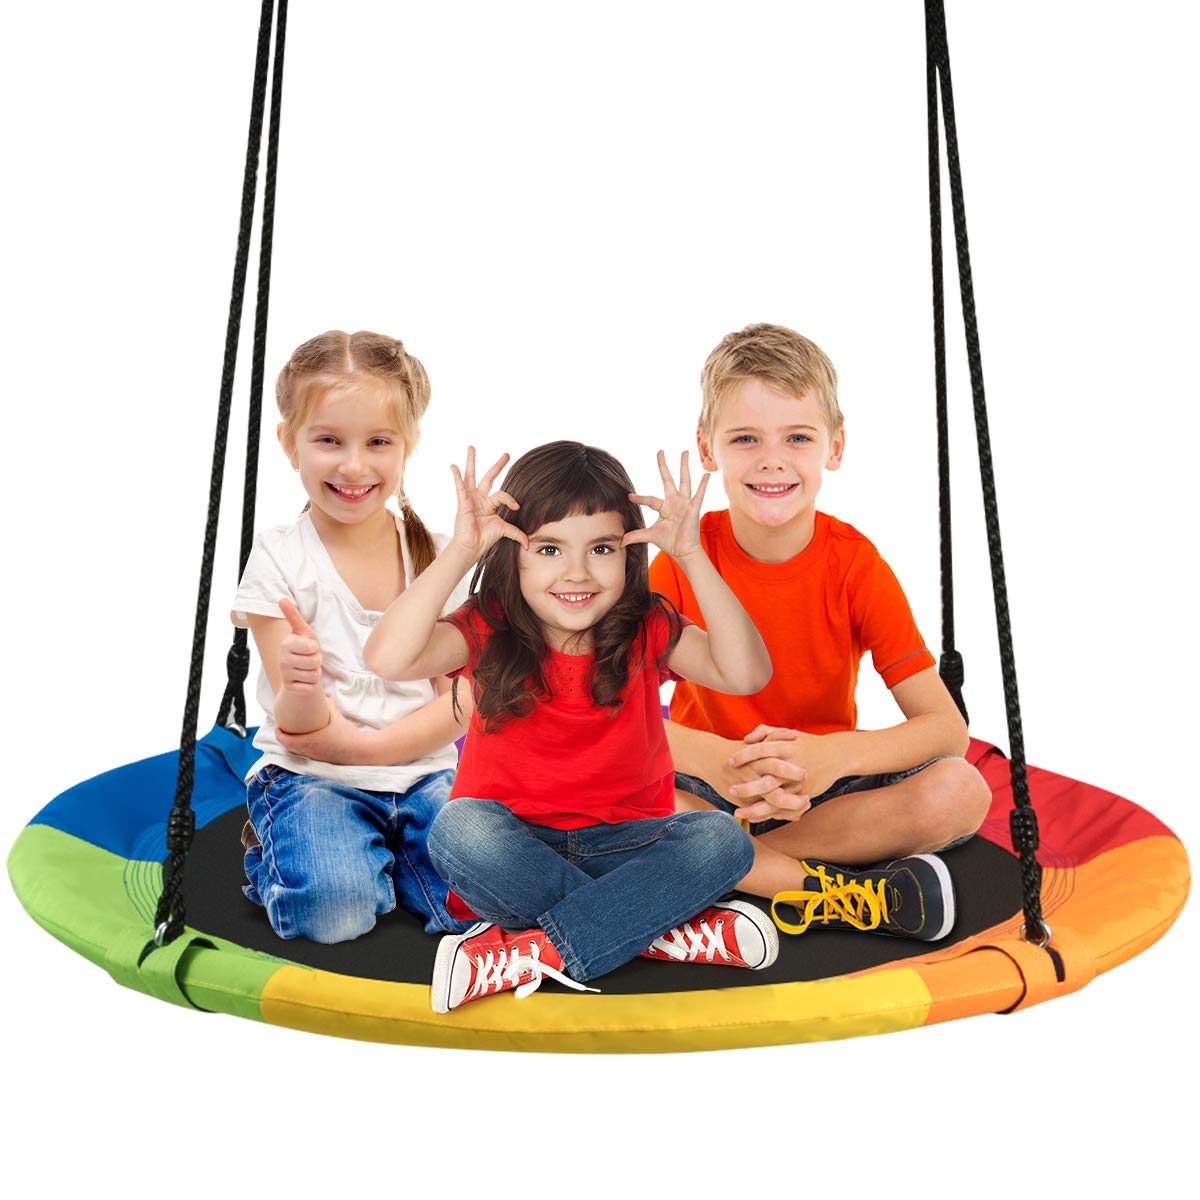 Costzon 40'' Waterproof Saucer Tree Swing Set, Outdoor Round Swing Colorful - Adjustable Hanging Ropes, Safe and Sturdy Swing for Children Park Backyard (Multicolor) by Costzon